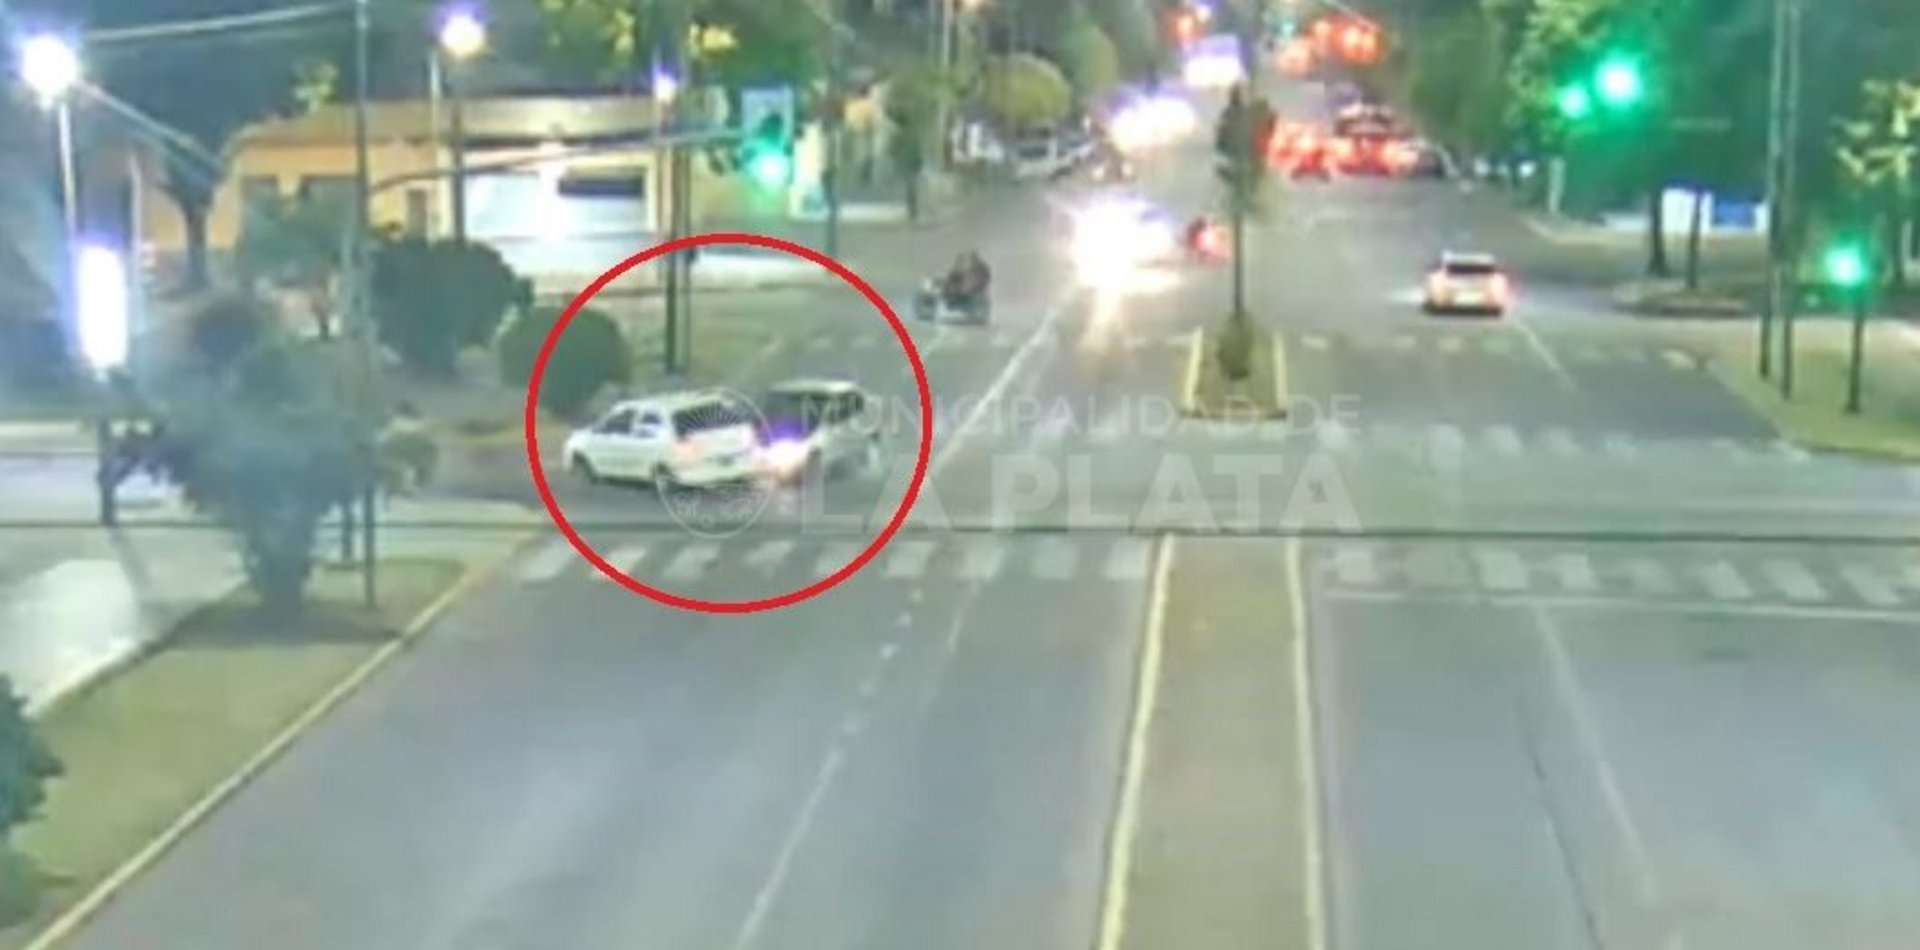 VIDEO: Dobló como quiso en plena diagonal 73 y causó un fuerte accidente